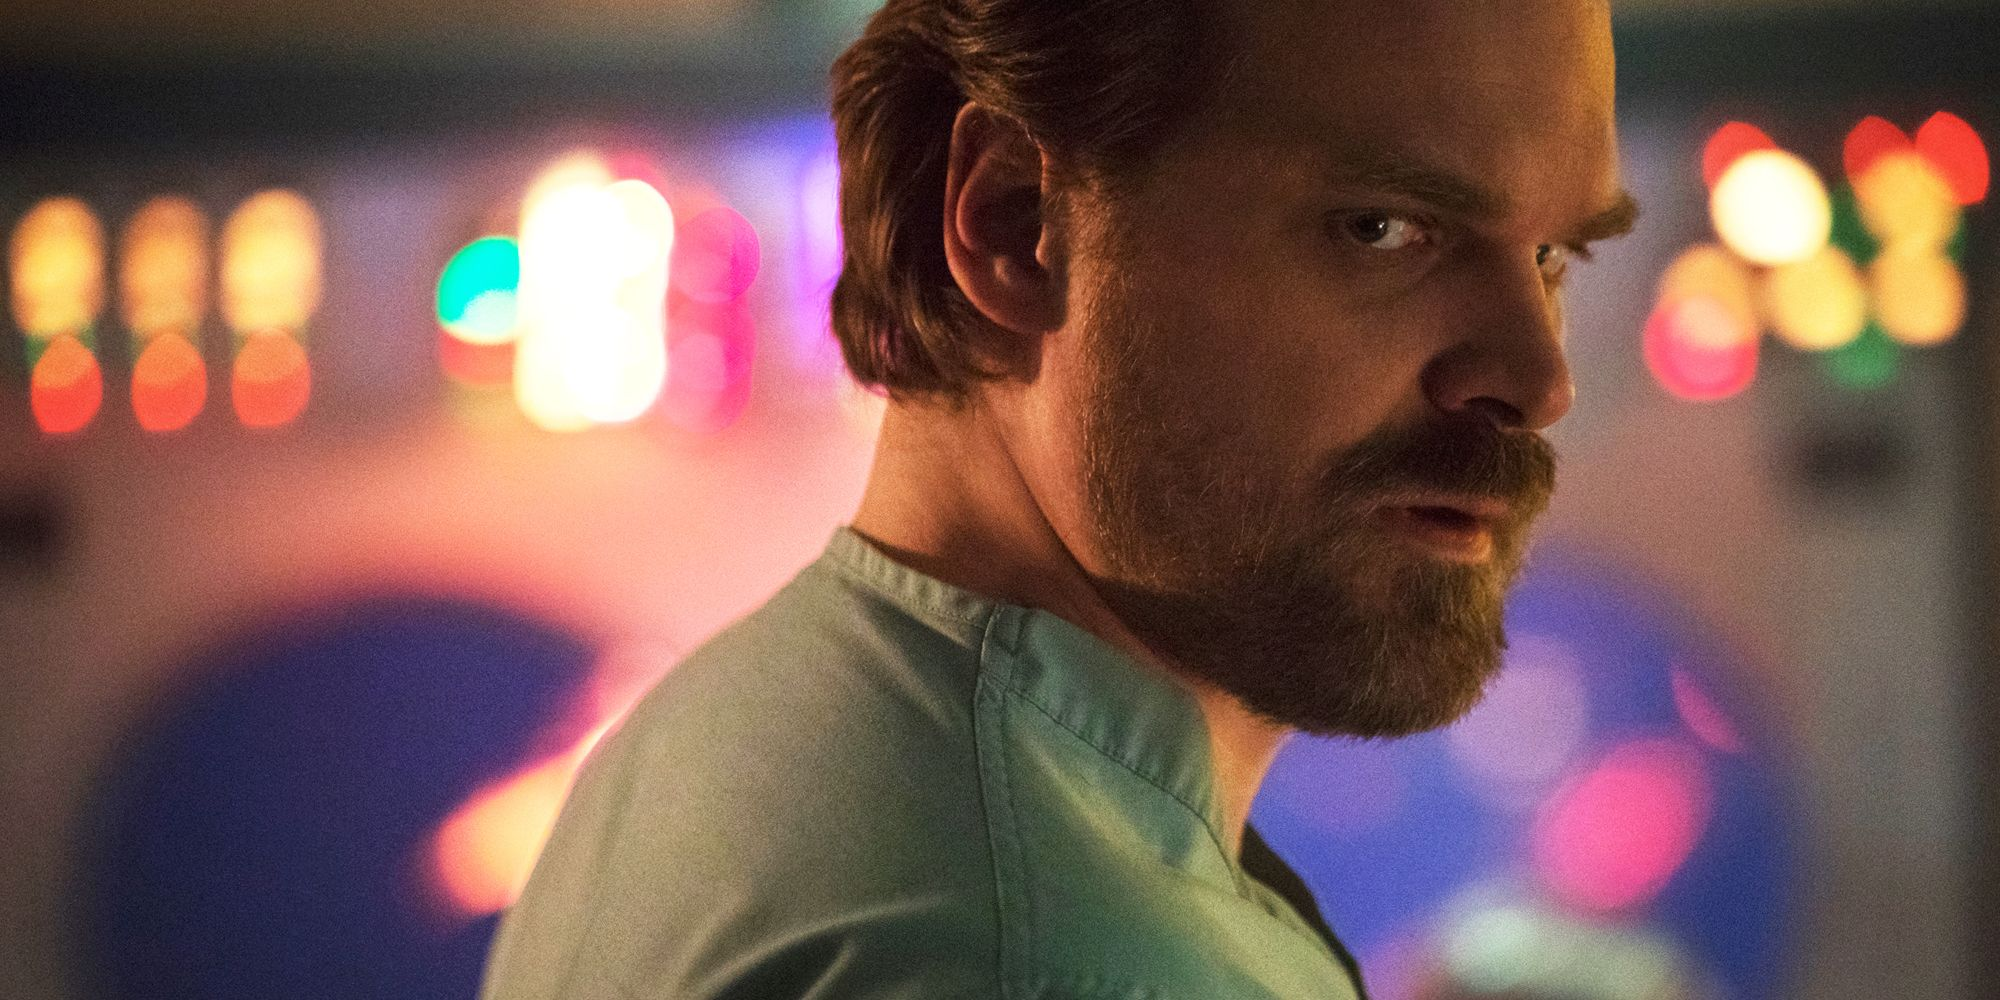 99b902fc0 9 Reasons Why Stranger Things' Hopper is the Best - Funny Tweets About Stranger  Things 2 David Harbour